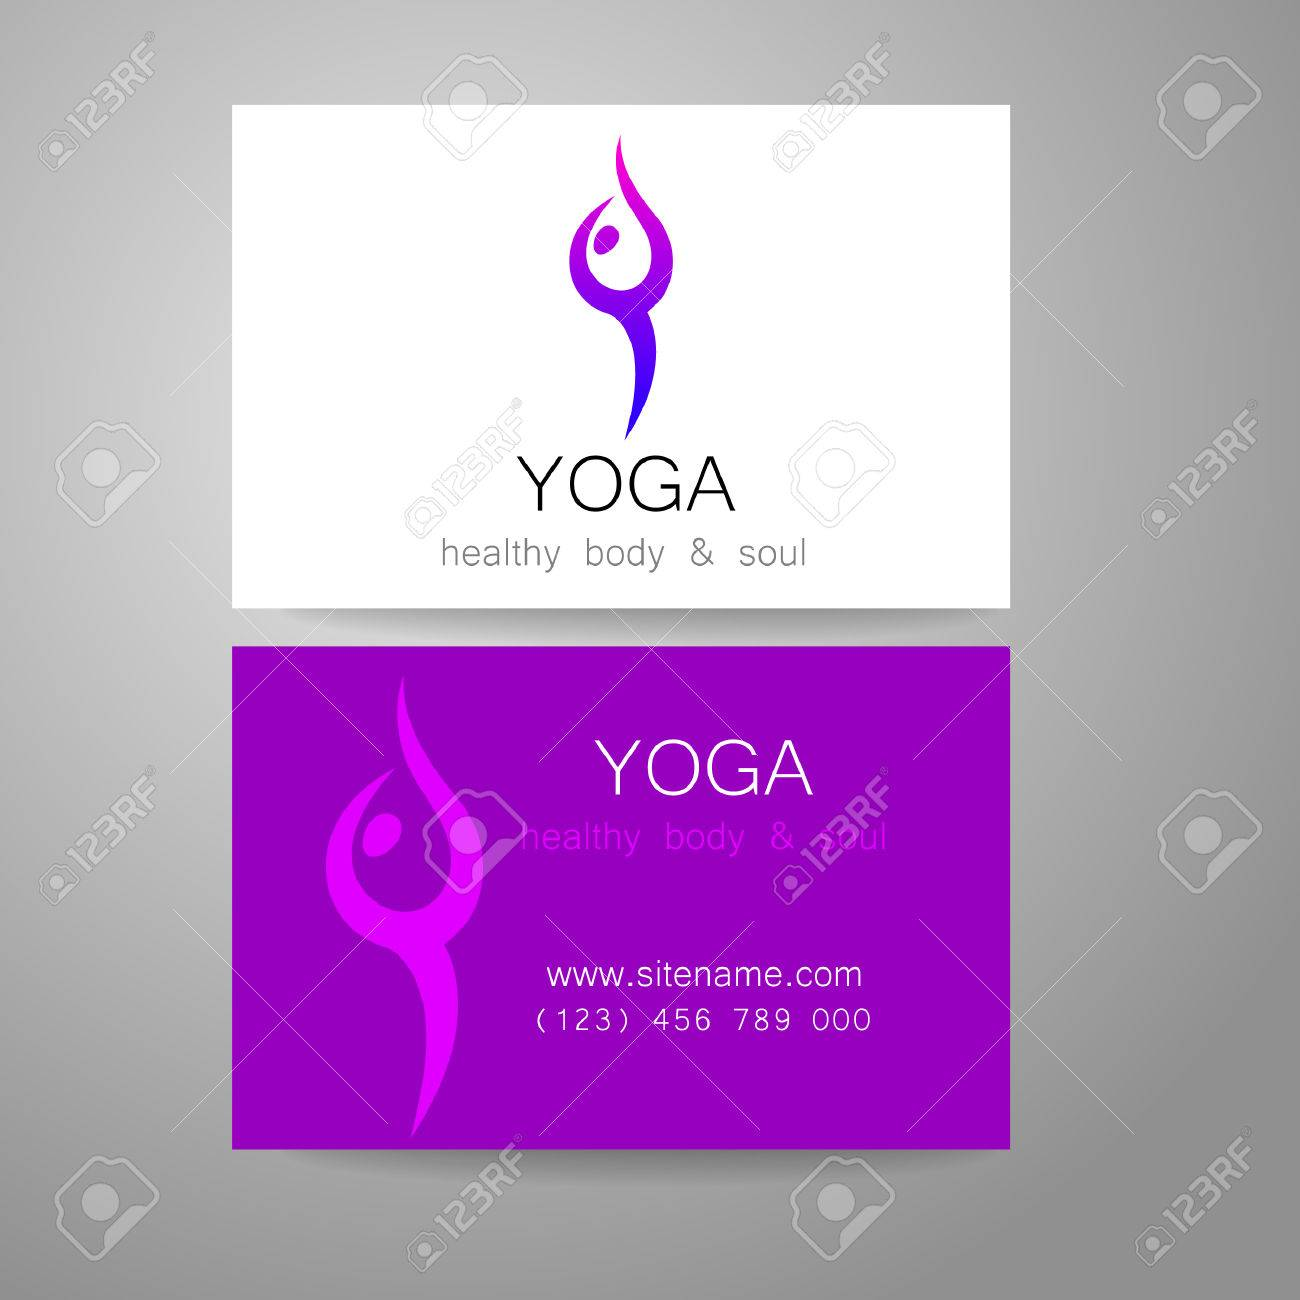 Yoga logo sign design and business cards template for yoga yoga logo sign design and business cards template for yoga studios classes reheart Image collections